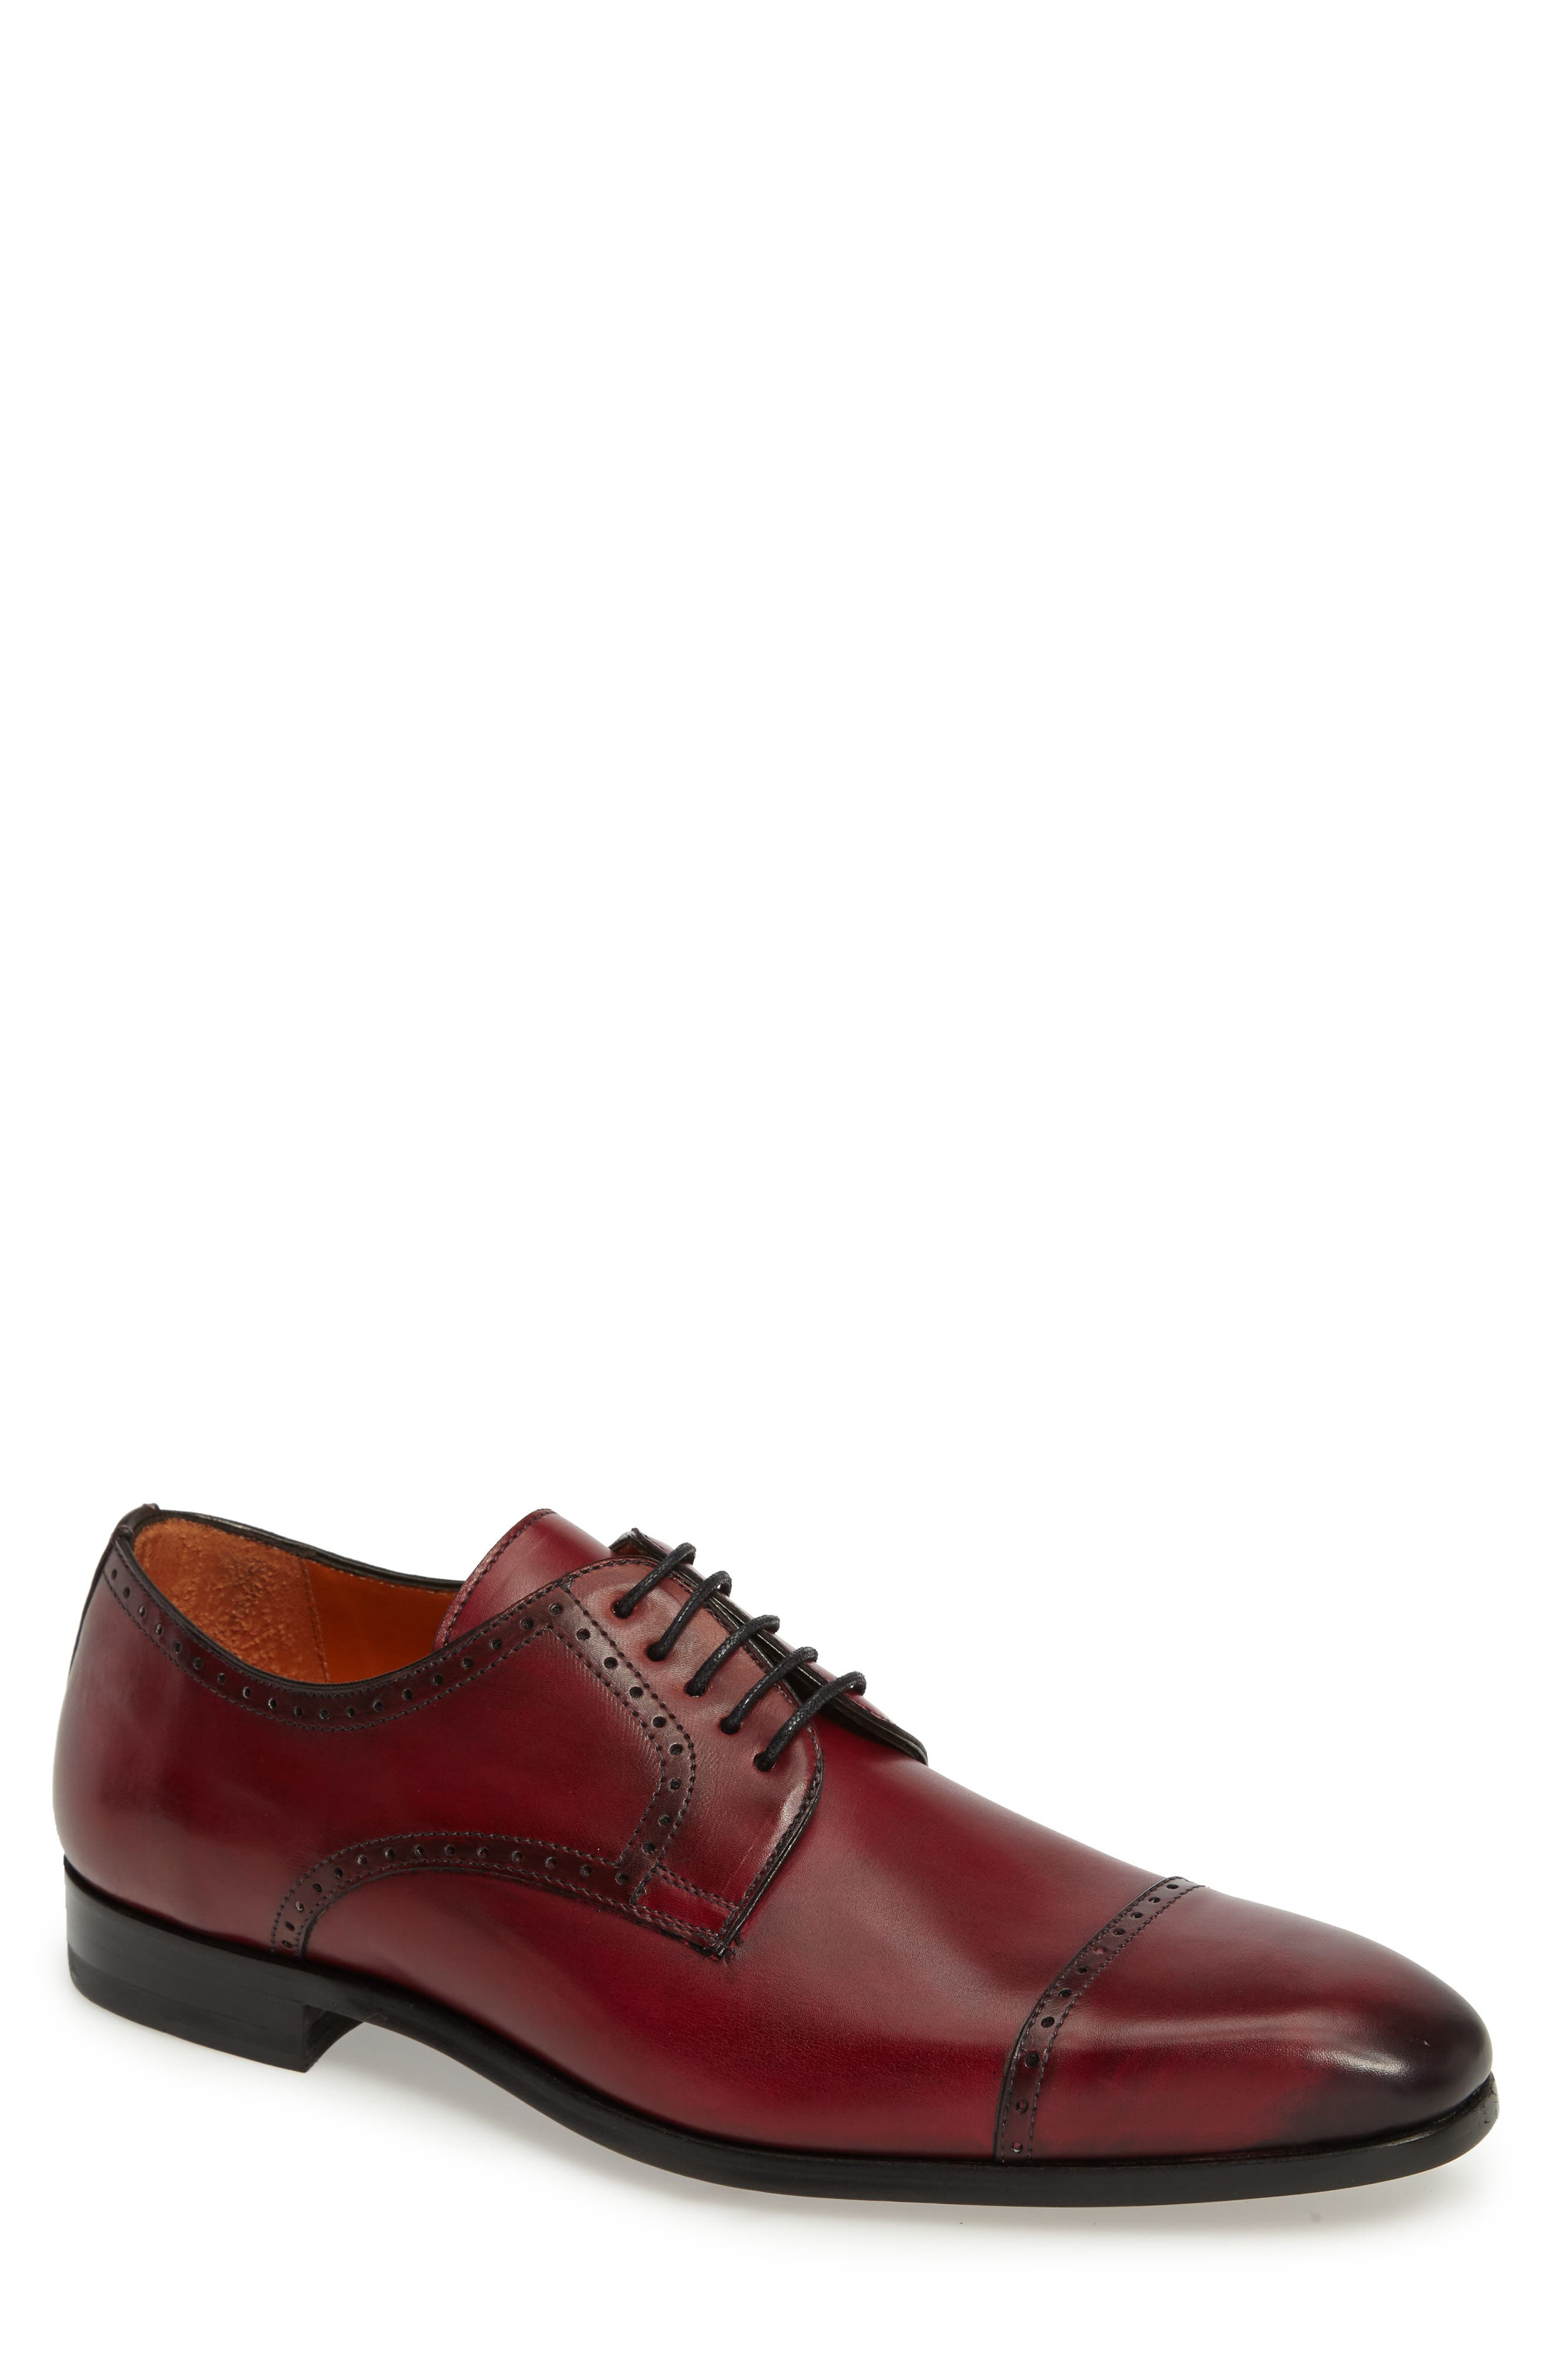 Boas Cap Toe Oxford,                         Main,                         color, Burgundy Leather